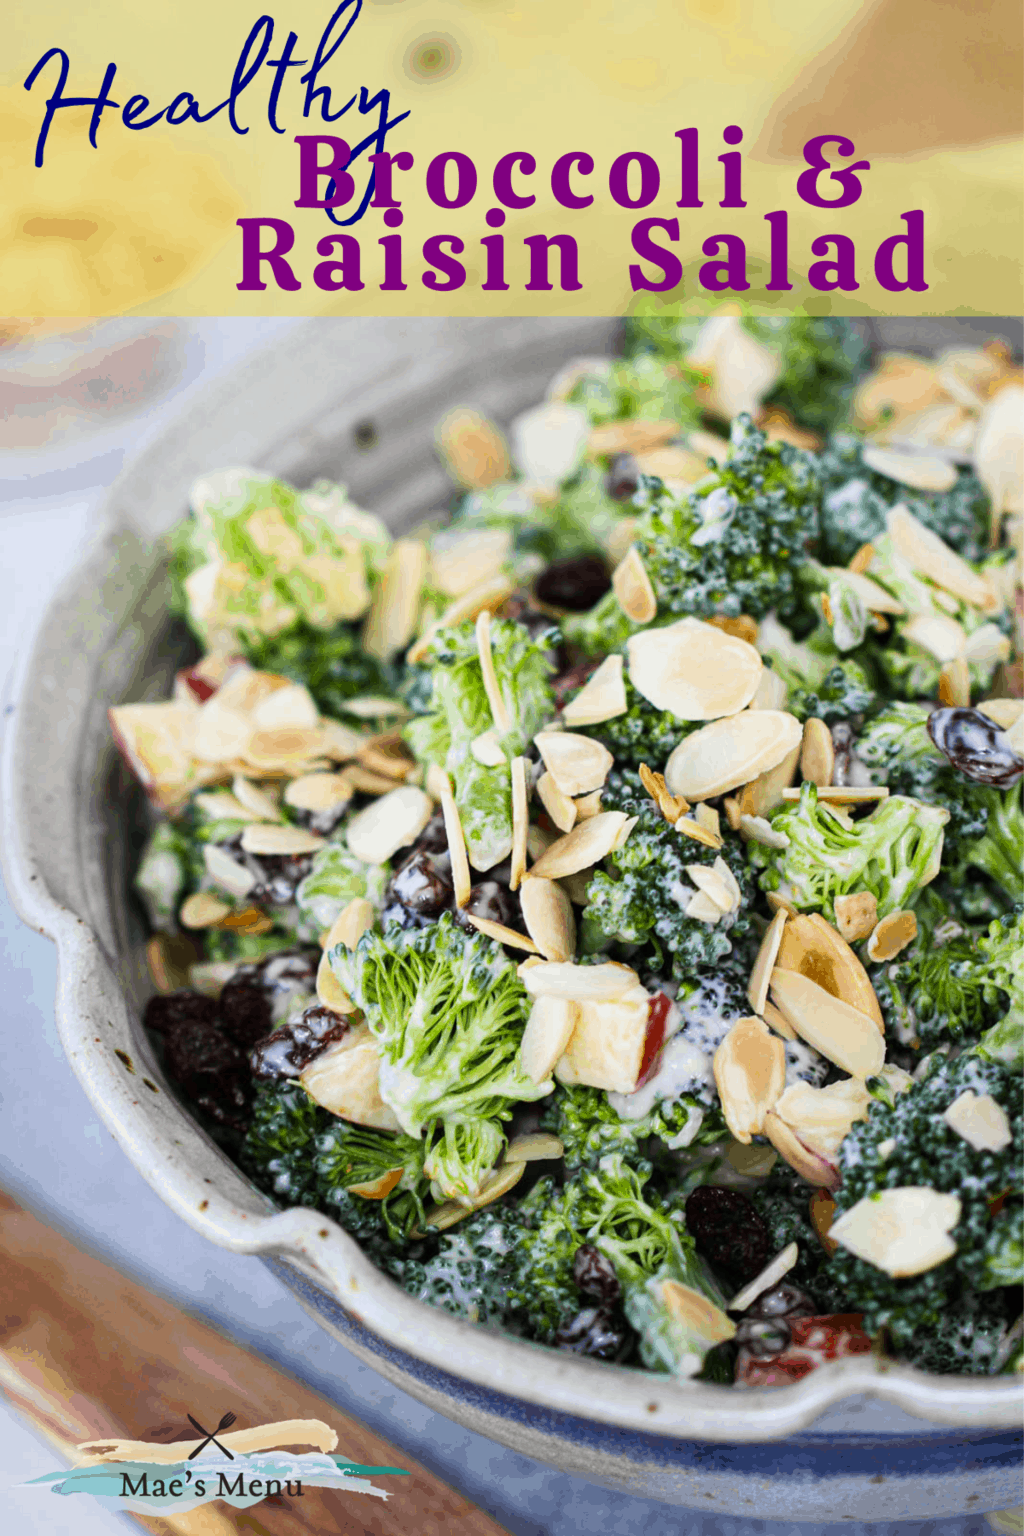 A pinterest pin for broccoli raisin salad with An up-close overhead shot of a bowl of the salad